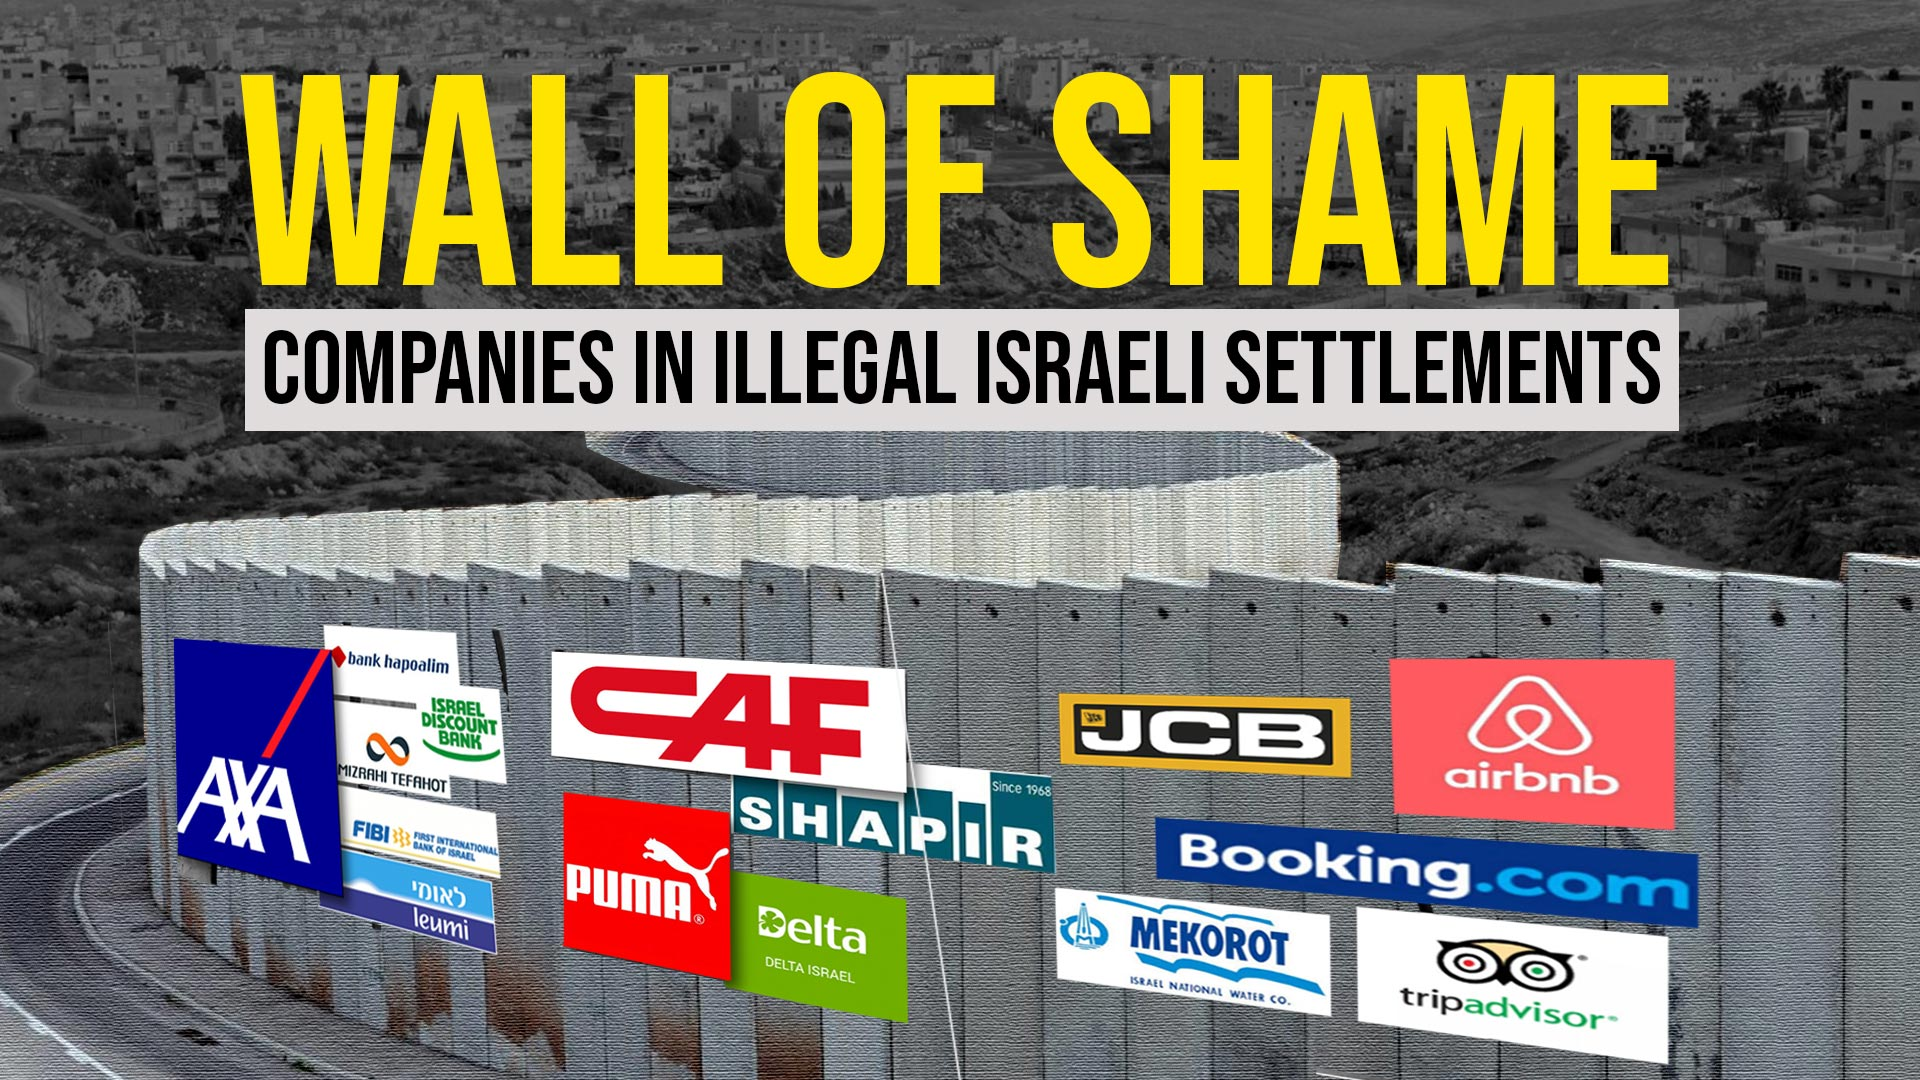 UN names and shames 112 companies operating in illegal Israeli settlements_